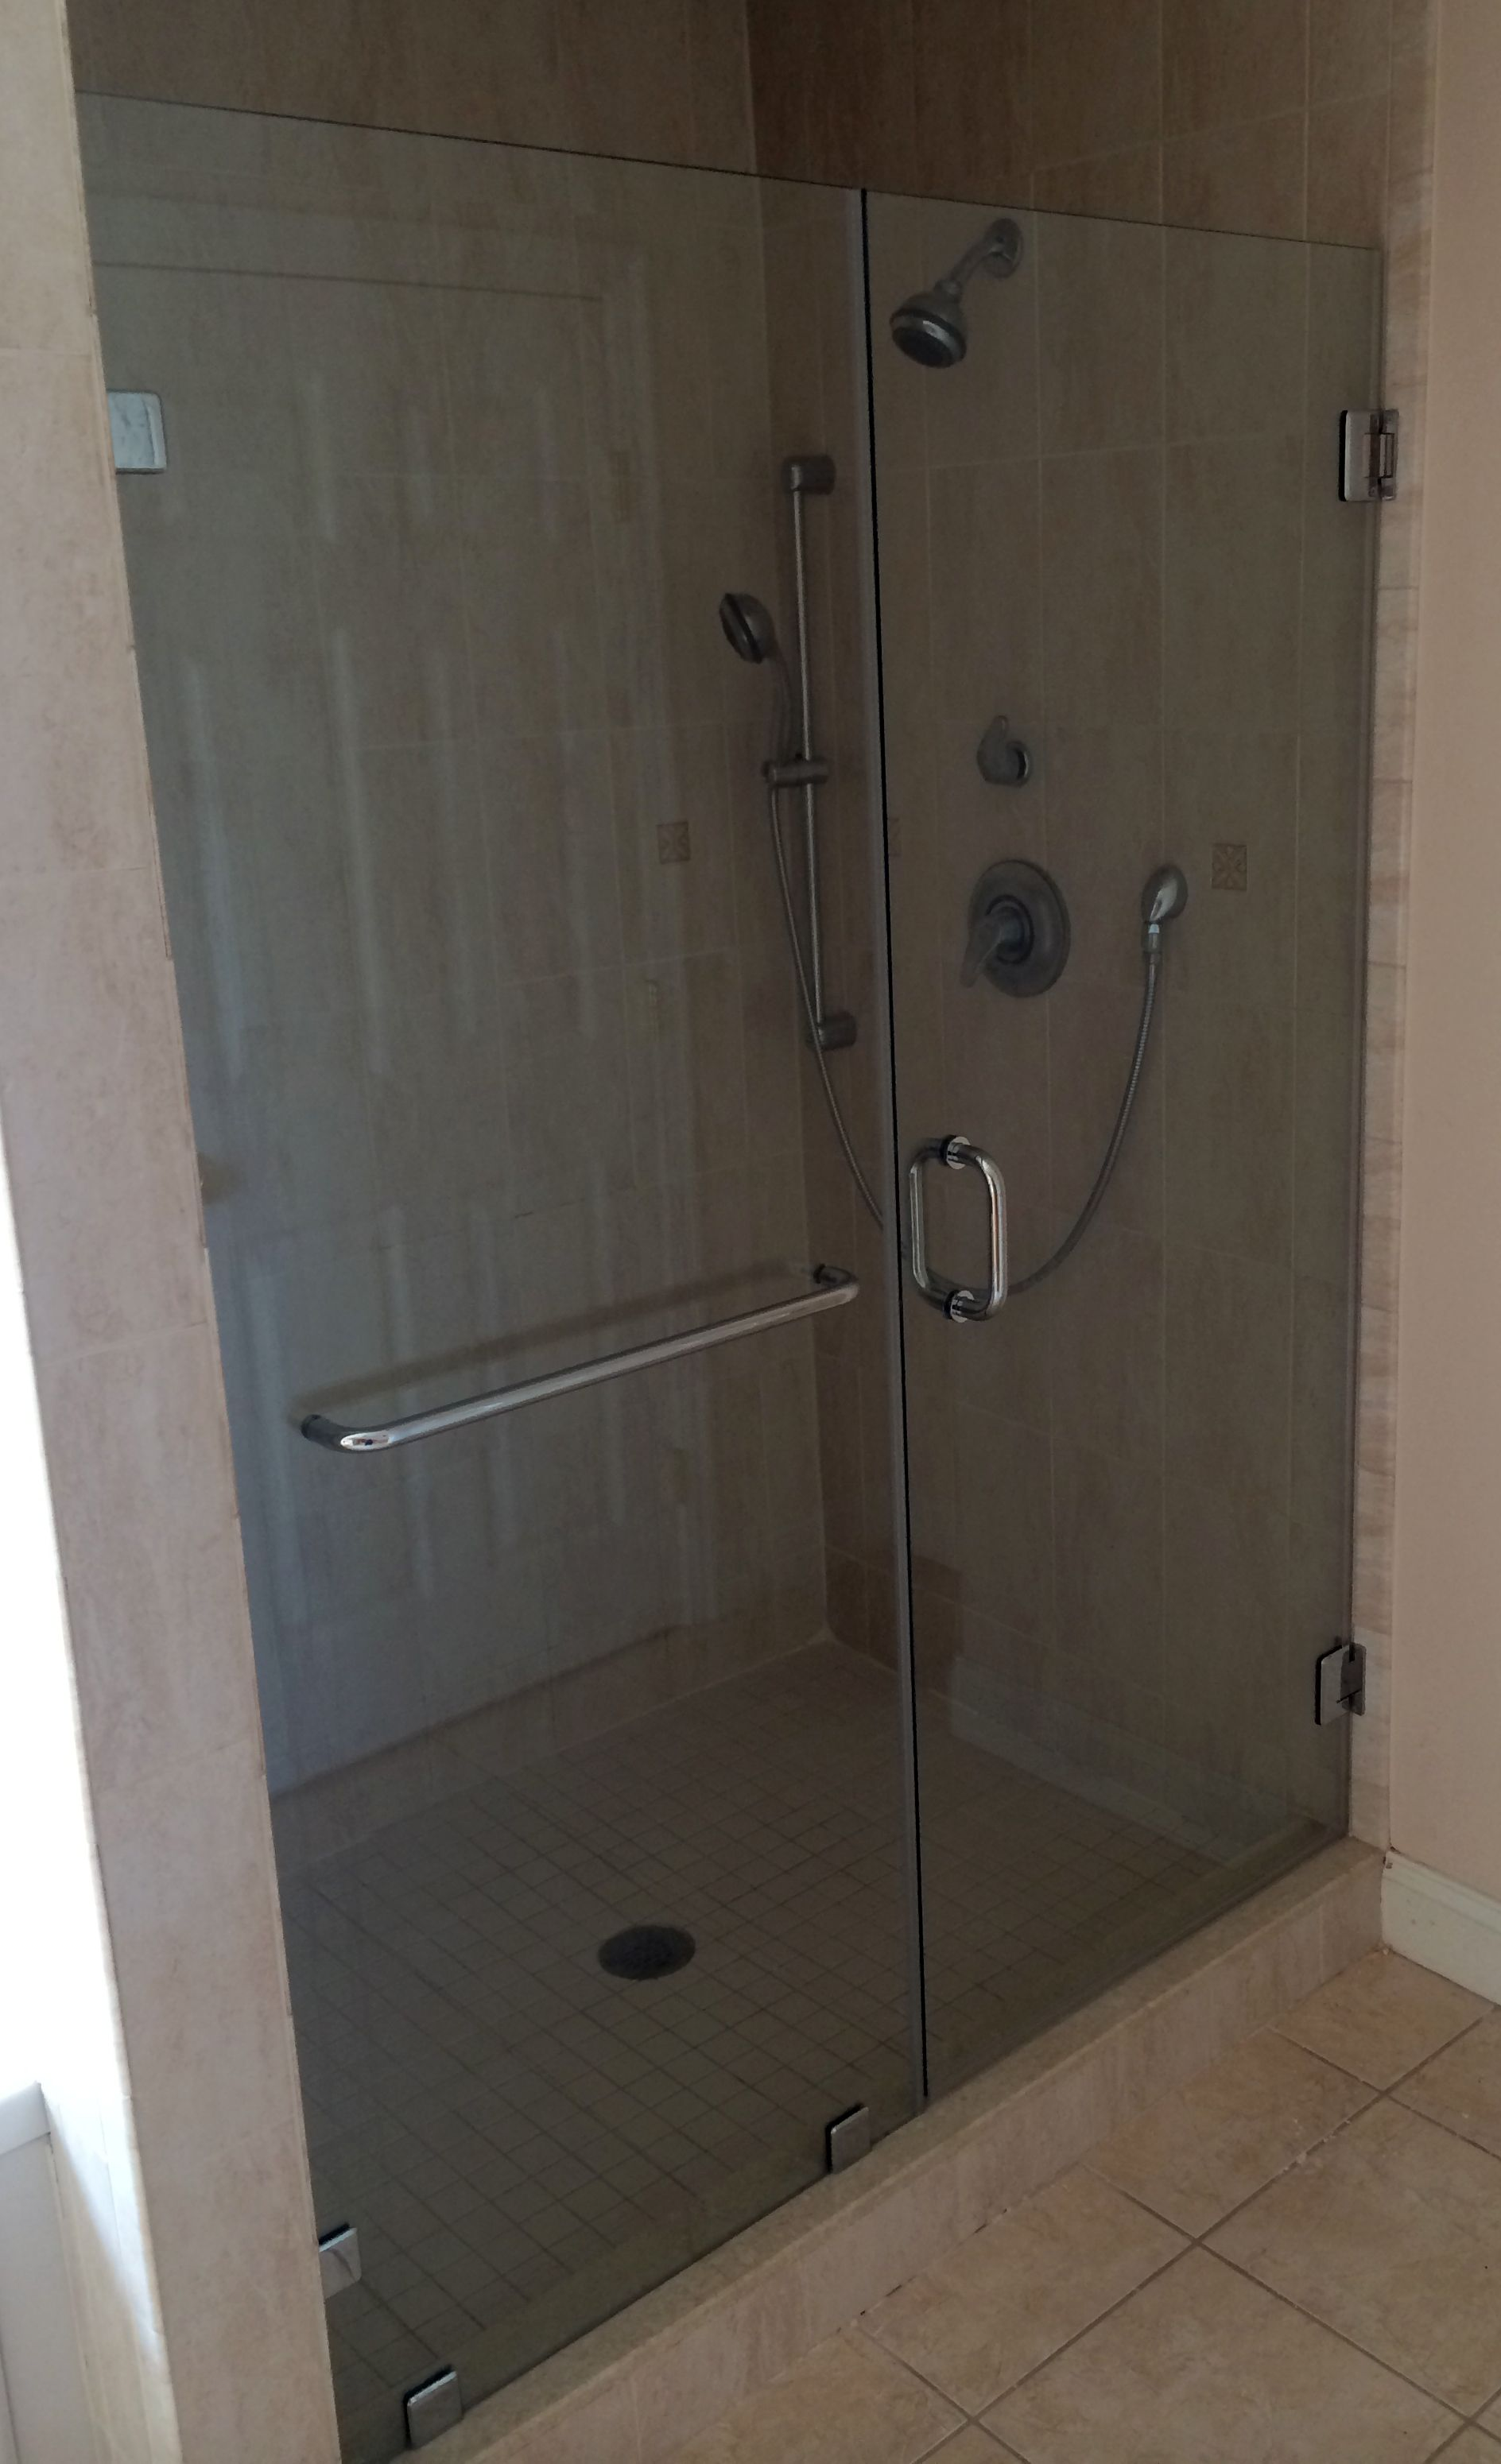 Frameless Shower Door And Panel Installed With Clips And A 20 Towel Bar In The Stationary Panel Polis Glass Shower Doors Sterling Shower Doors Glass Shower